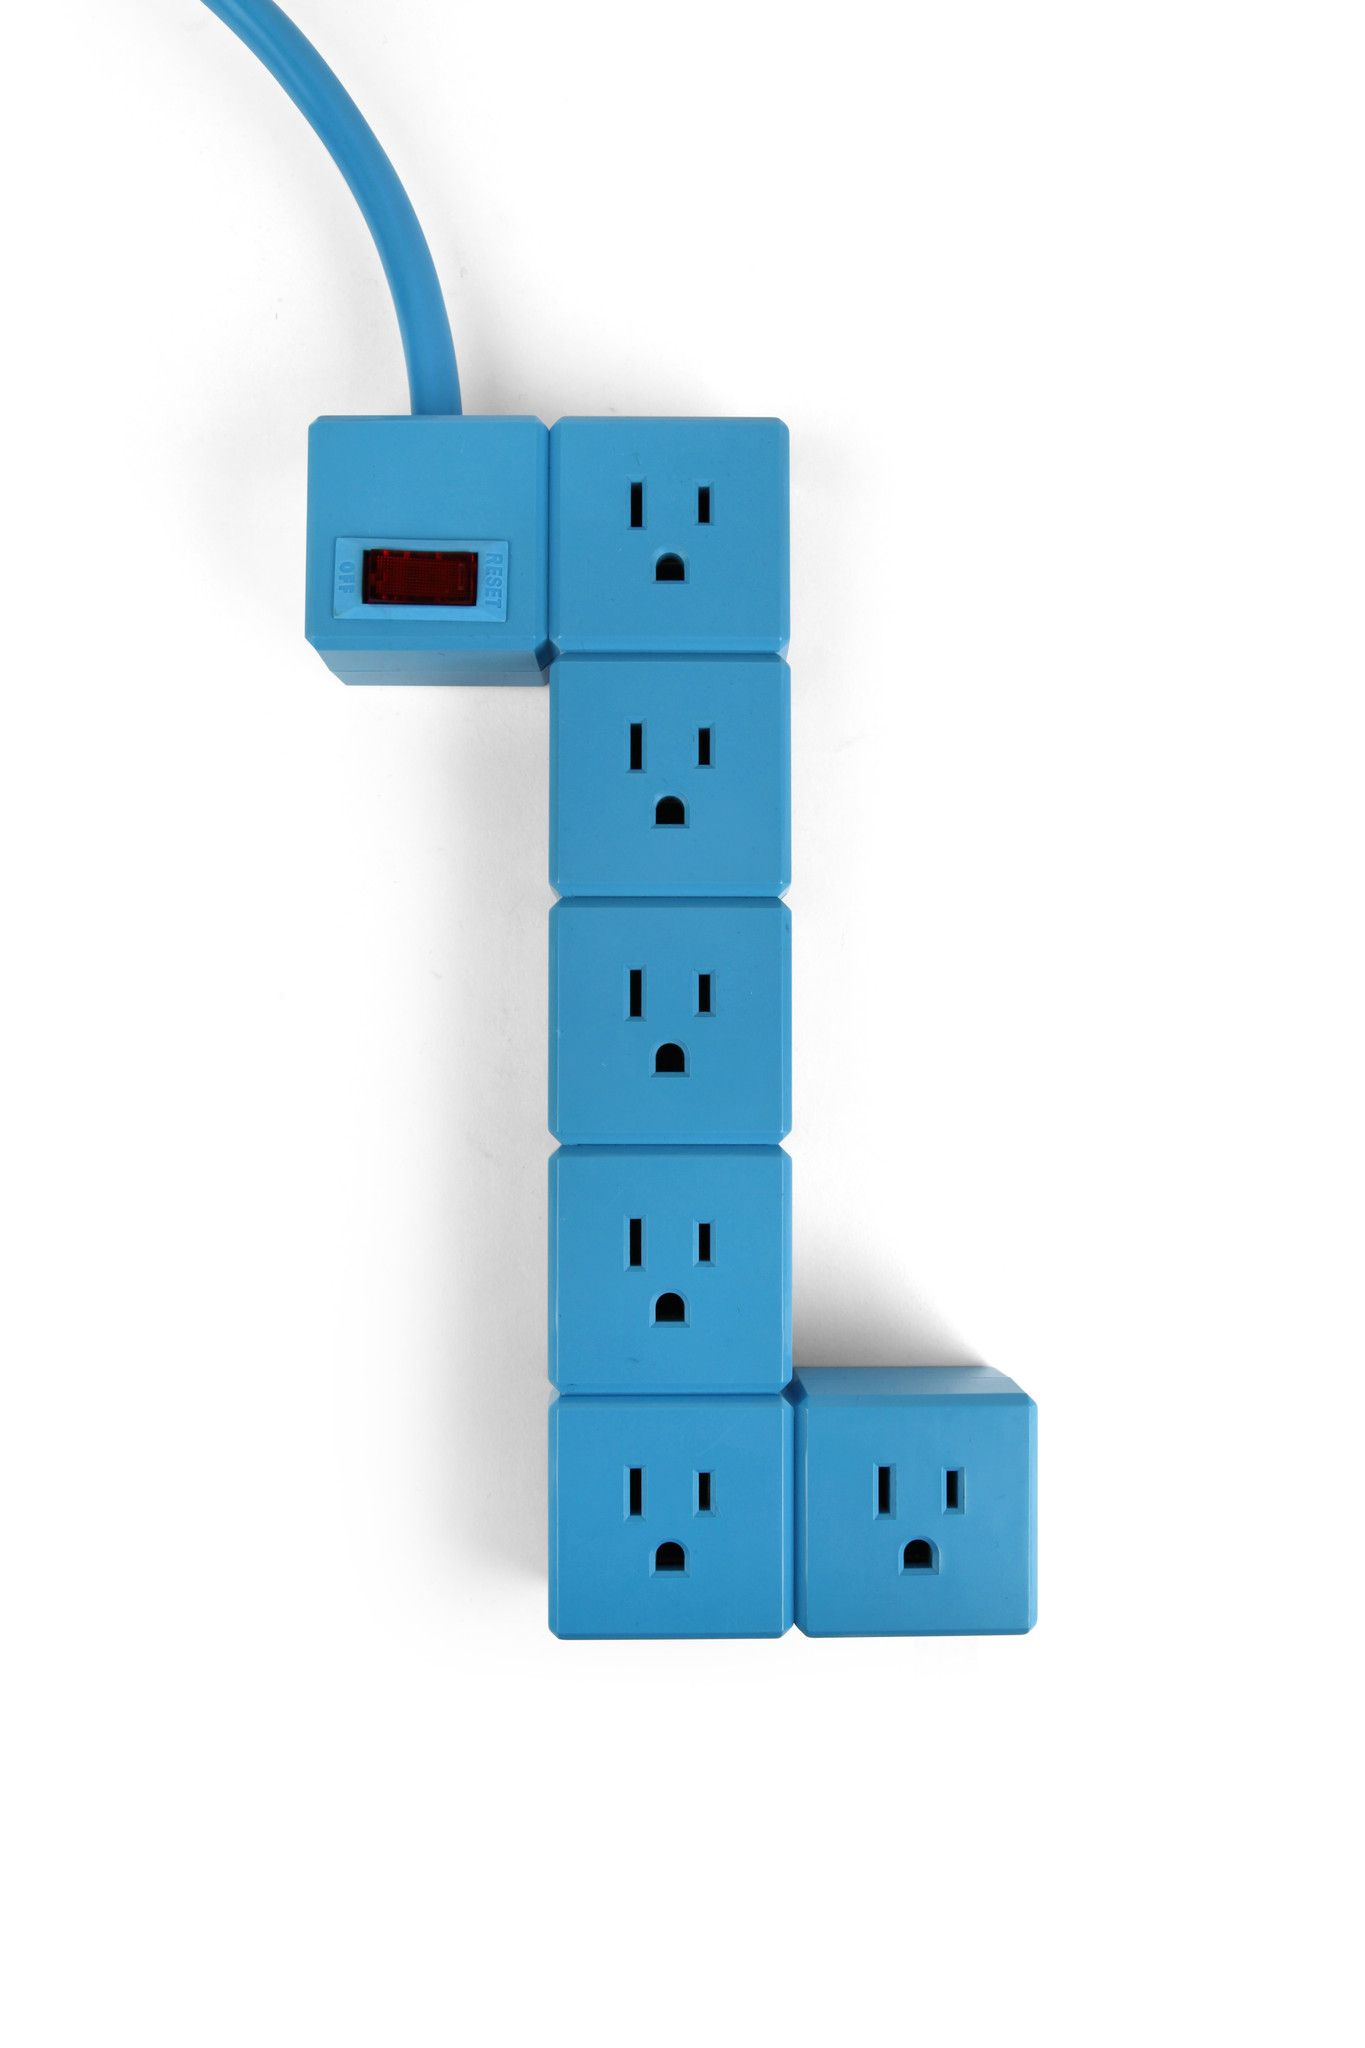 Cool Electrical Outlets Modular Power Strips That Fit Pretty Much Anywhere That